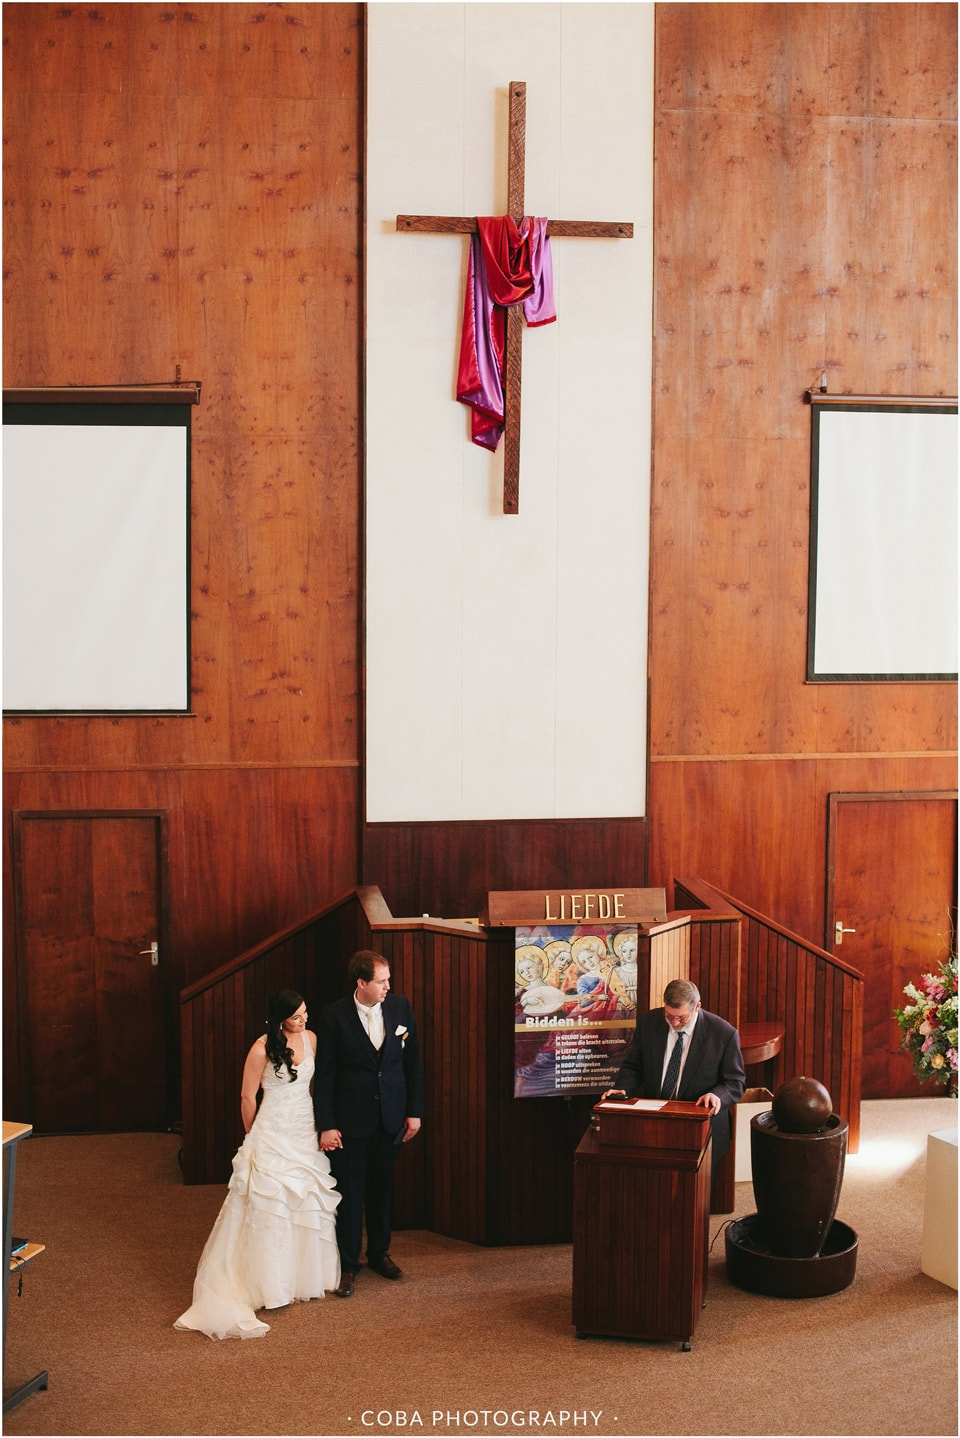 philip-lisma-kronenbrug-wedding-_-coba-photography-110